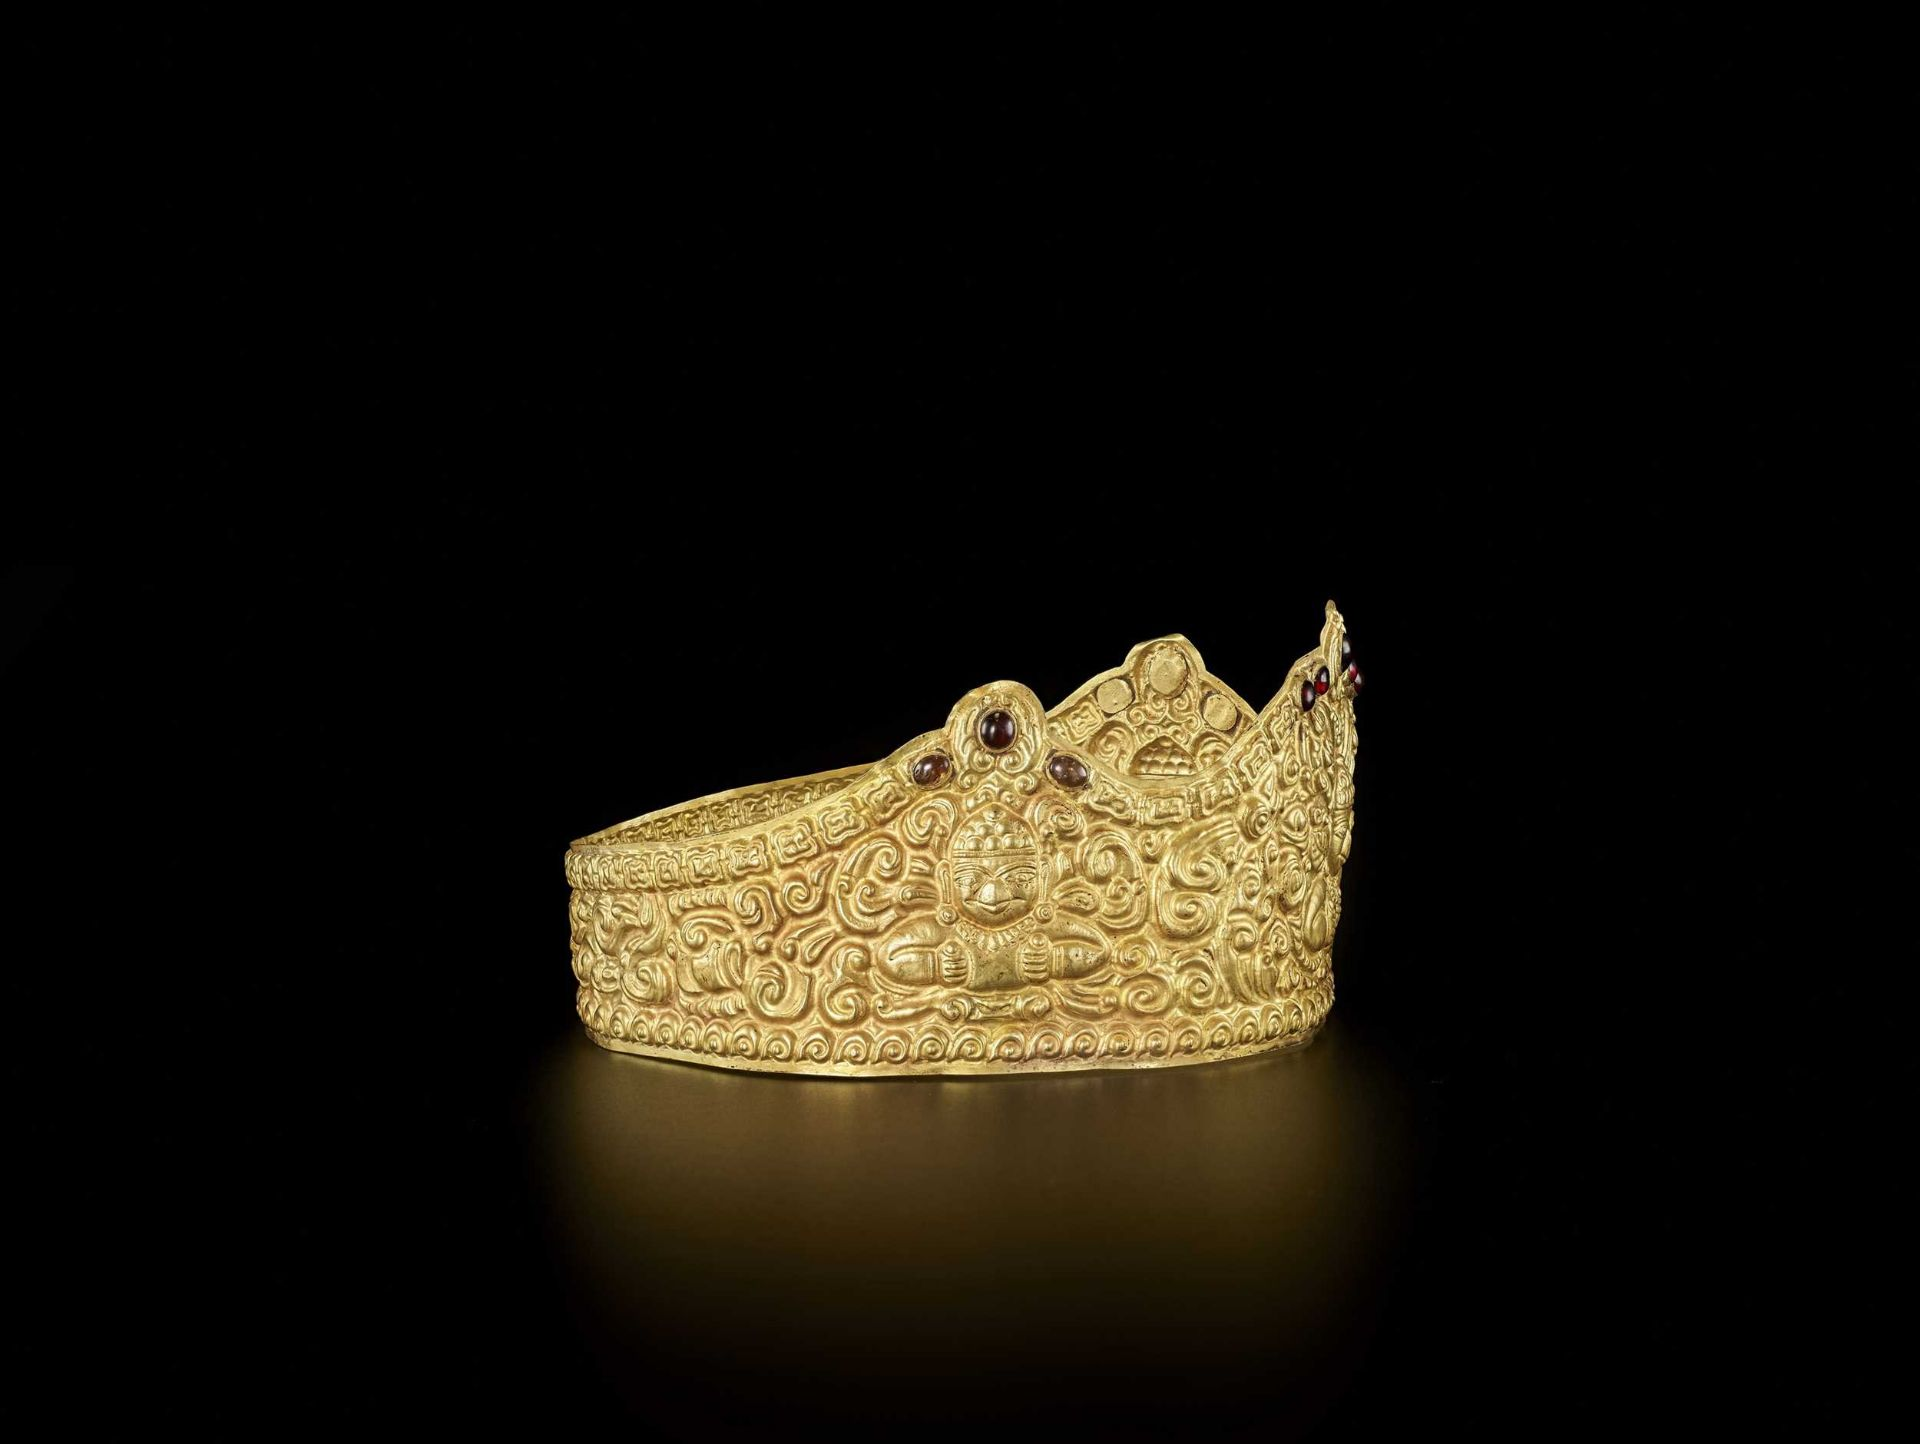 AN EXTRE MELY RARE AND FINE CHAM GEMSTONE-SET GOLD REPOUSSÉ CROWN WITH GARUDAS - Bild 8 aus 9